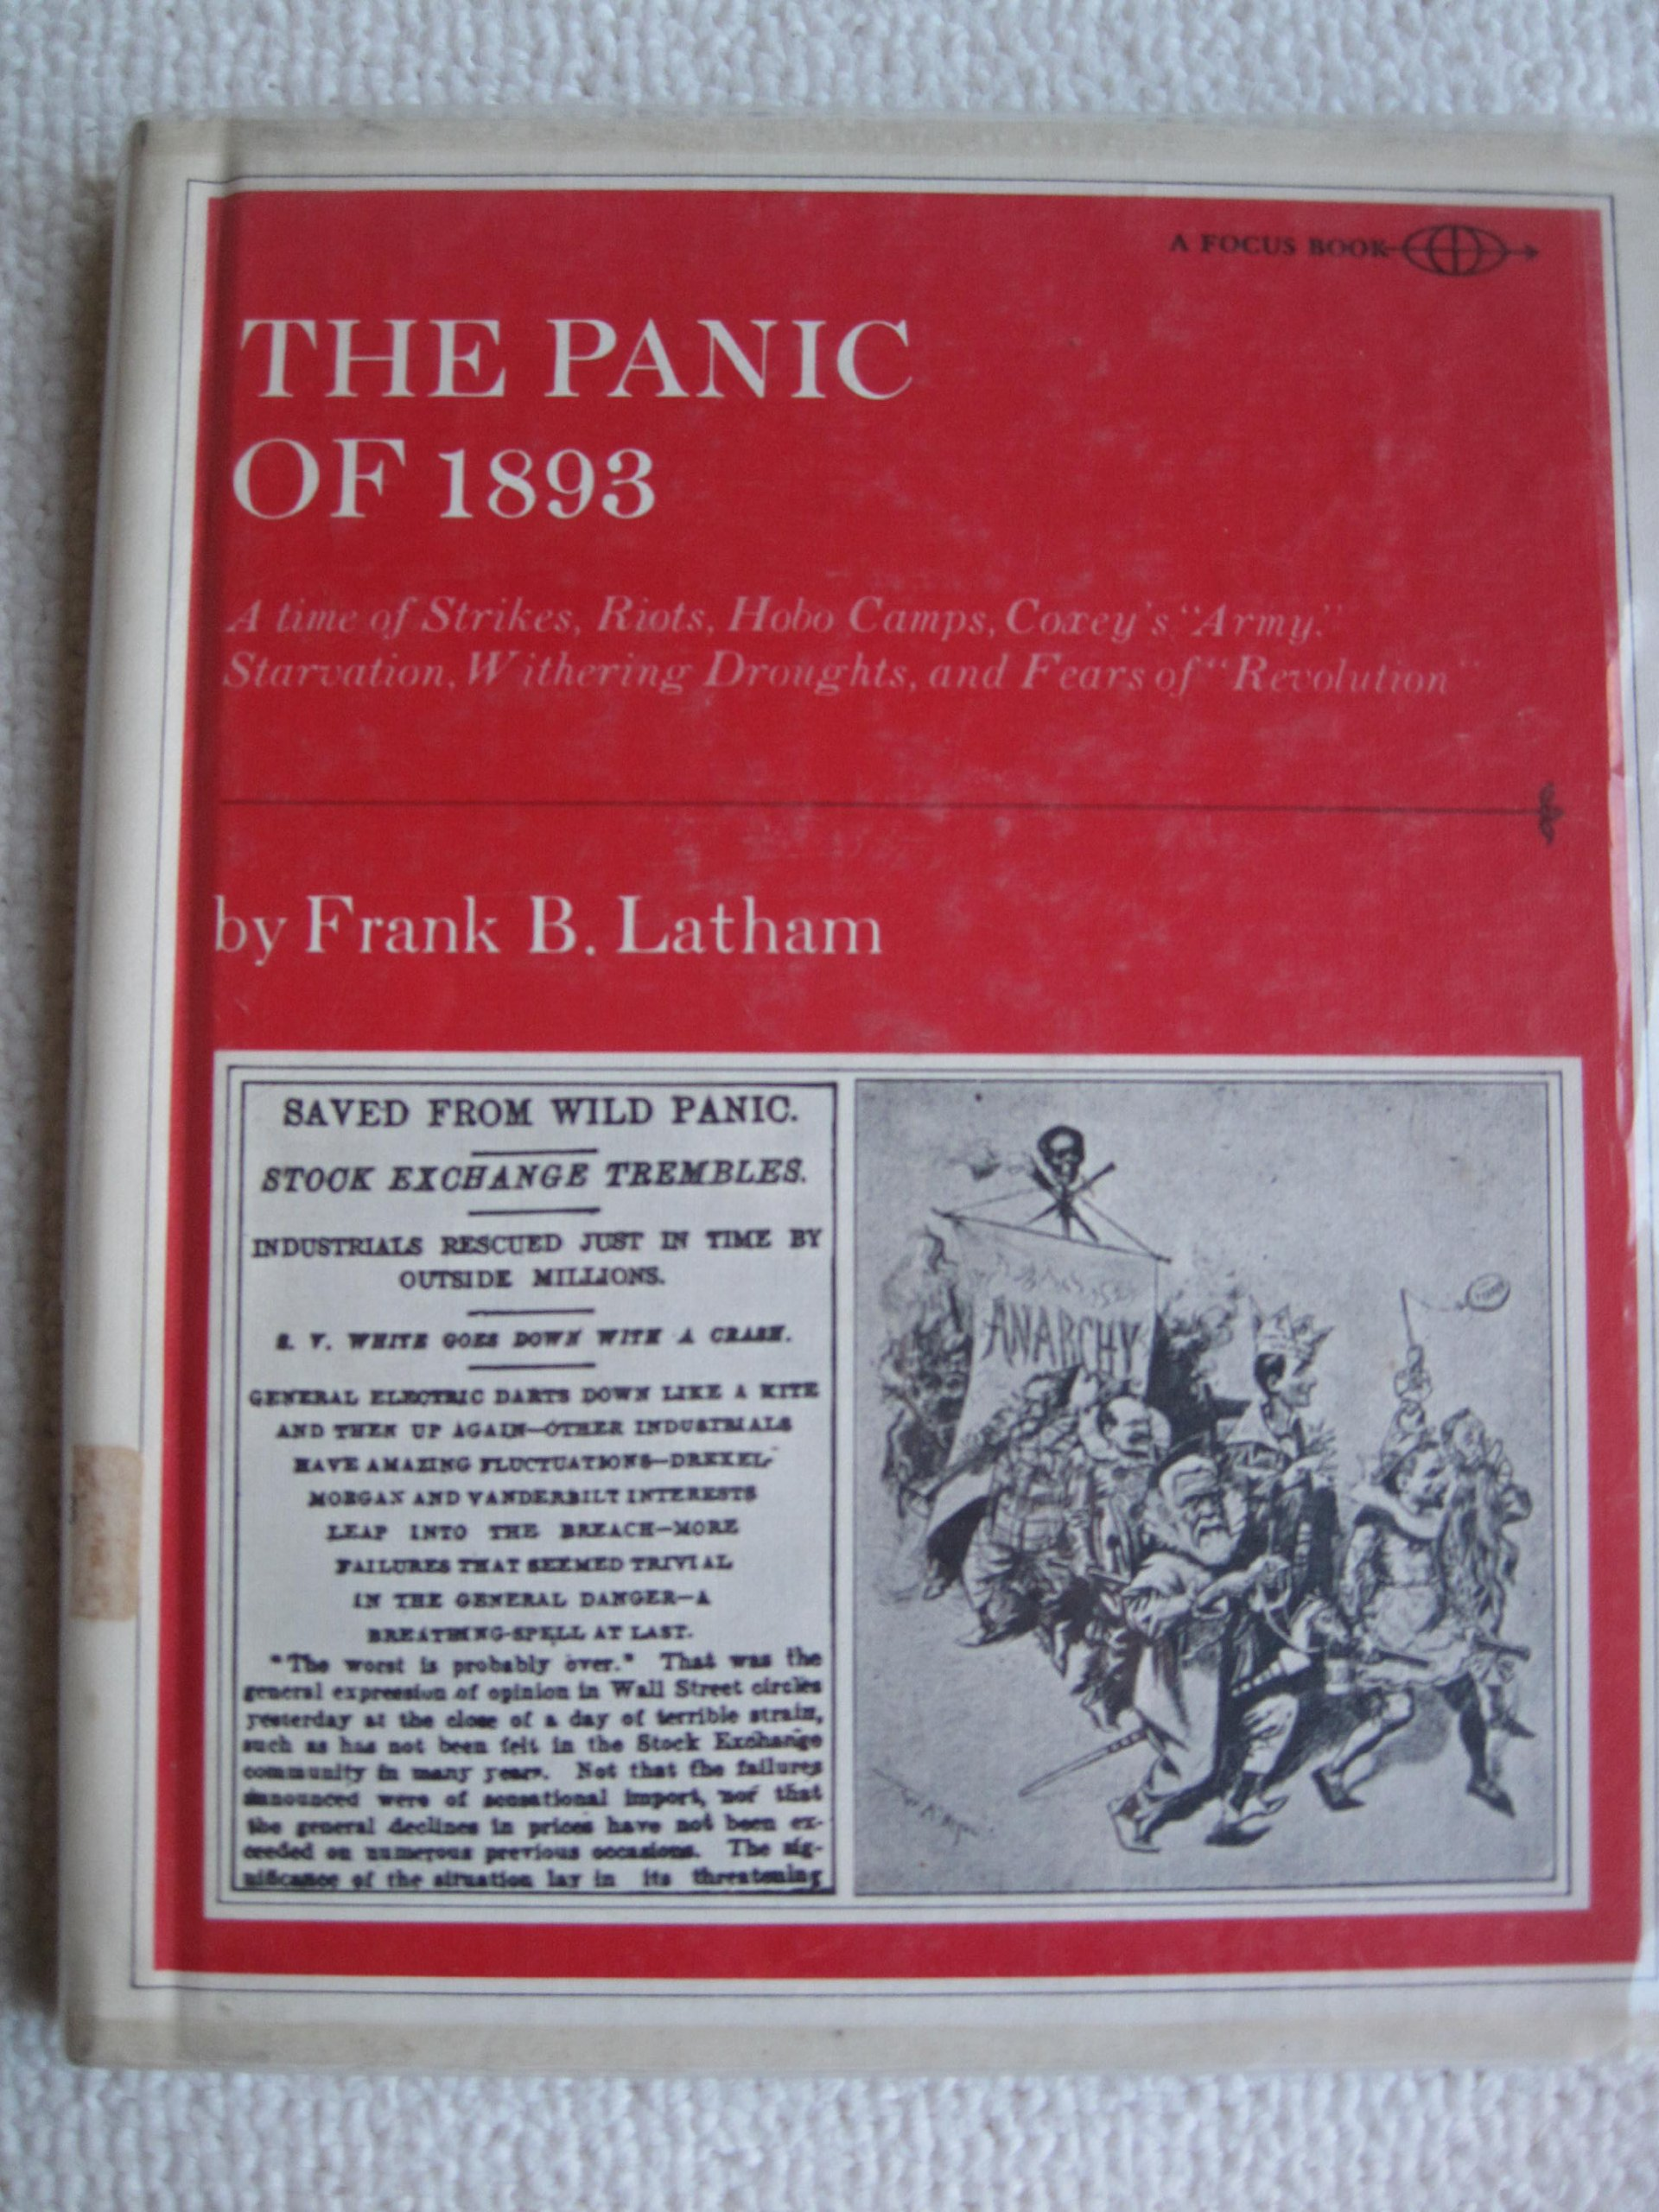 The panic of 1893 a time of strikes riots hobo camps coxeys the panic of 1893 a time of strikes riots hobo camps coxeys army starvation withering droughts and fears of revolution a focus book frank fandeluxe Image collections